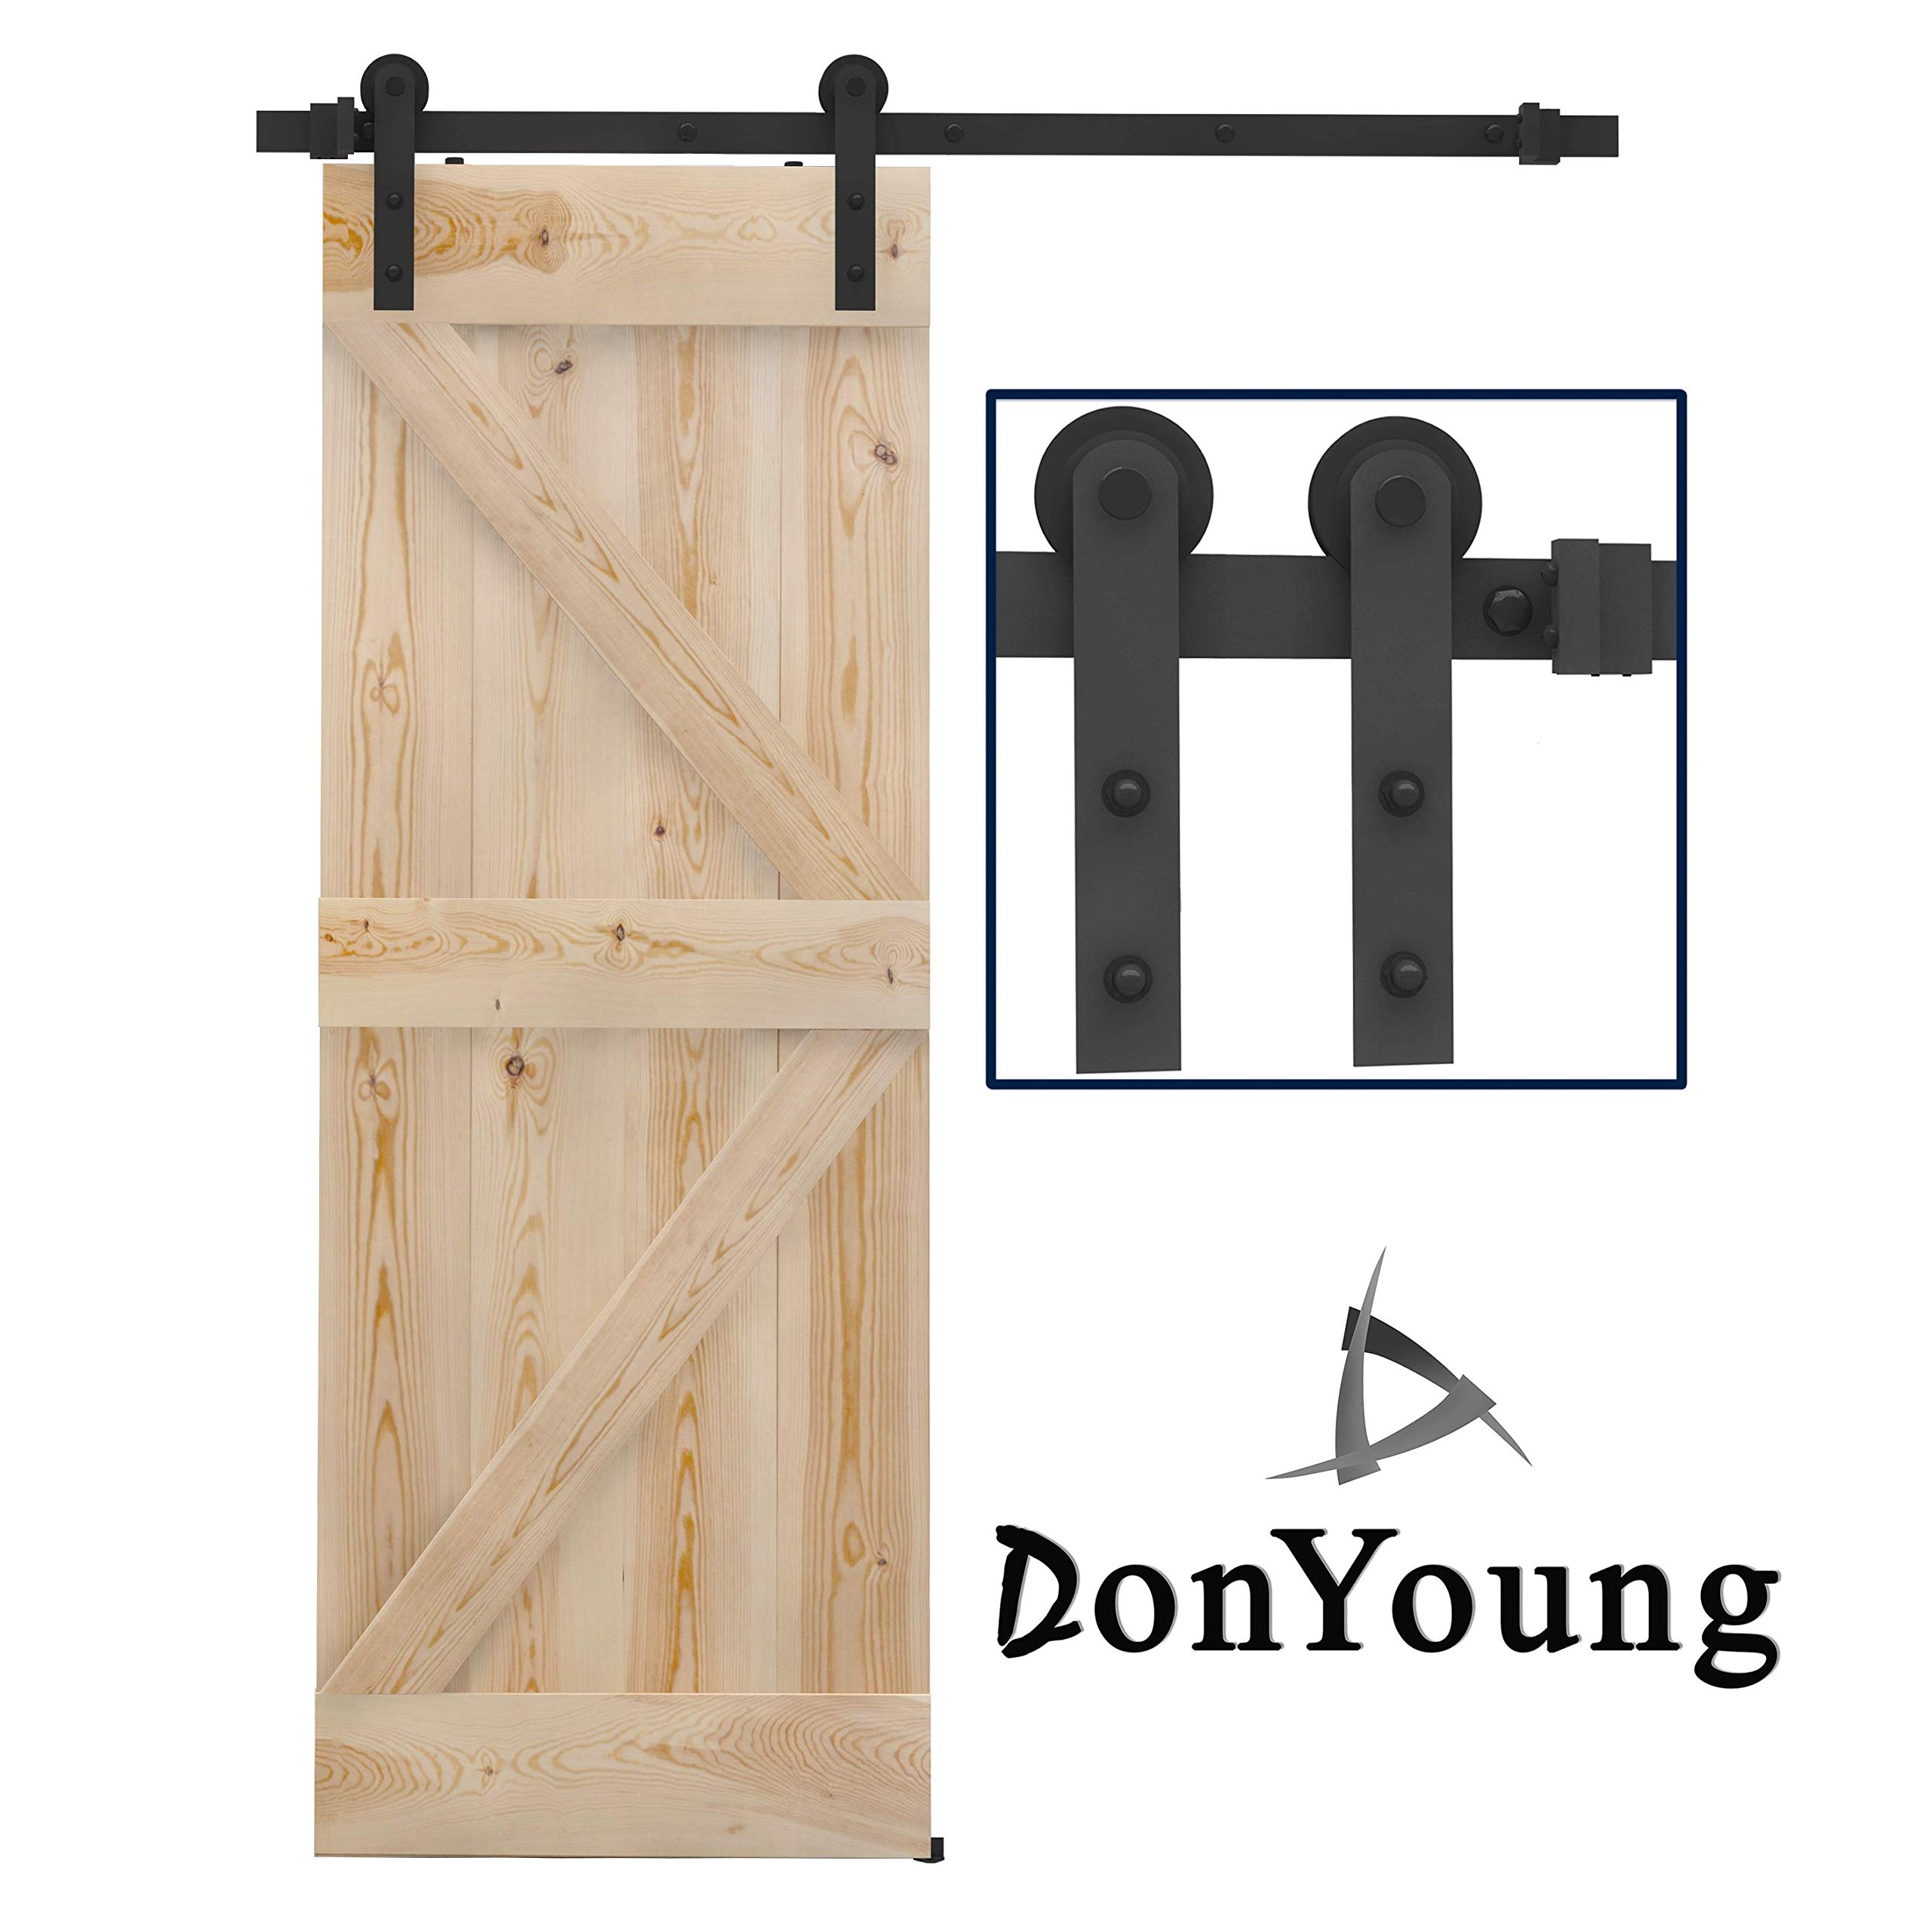 DonYoung 5 Feet Single Sliding Barn Door Hardware Kit, Heavy Duty Steel Barn Door Track 2PCS I-Shape Hanger with Quiet and Smooth Wheel, Includes All Necessary Accessories, Black